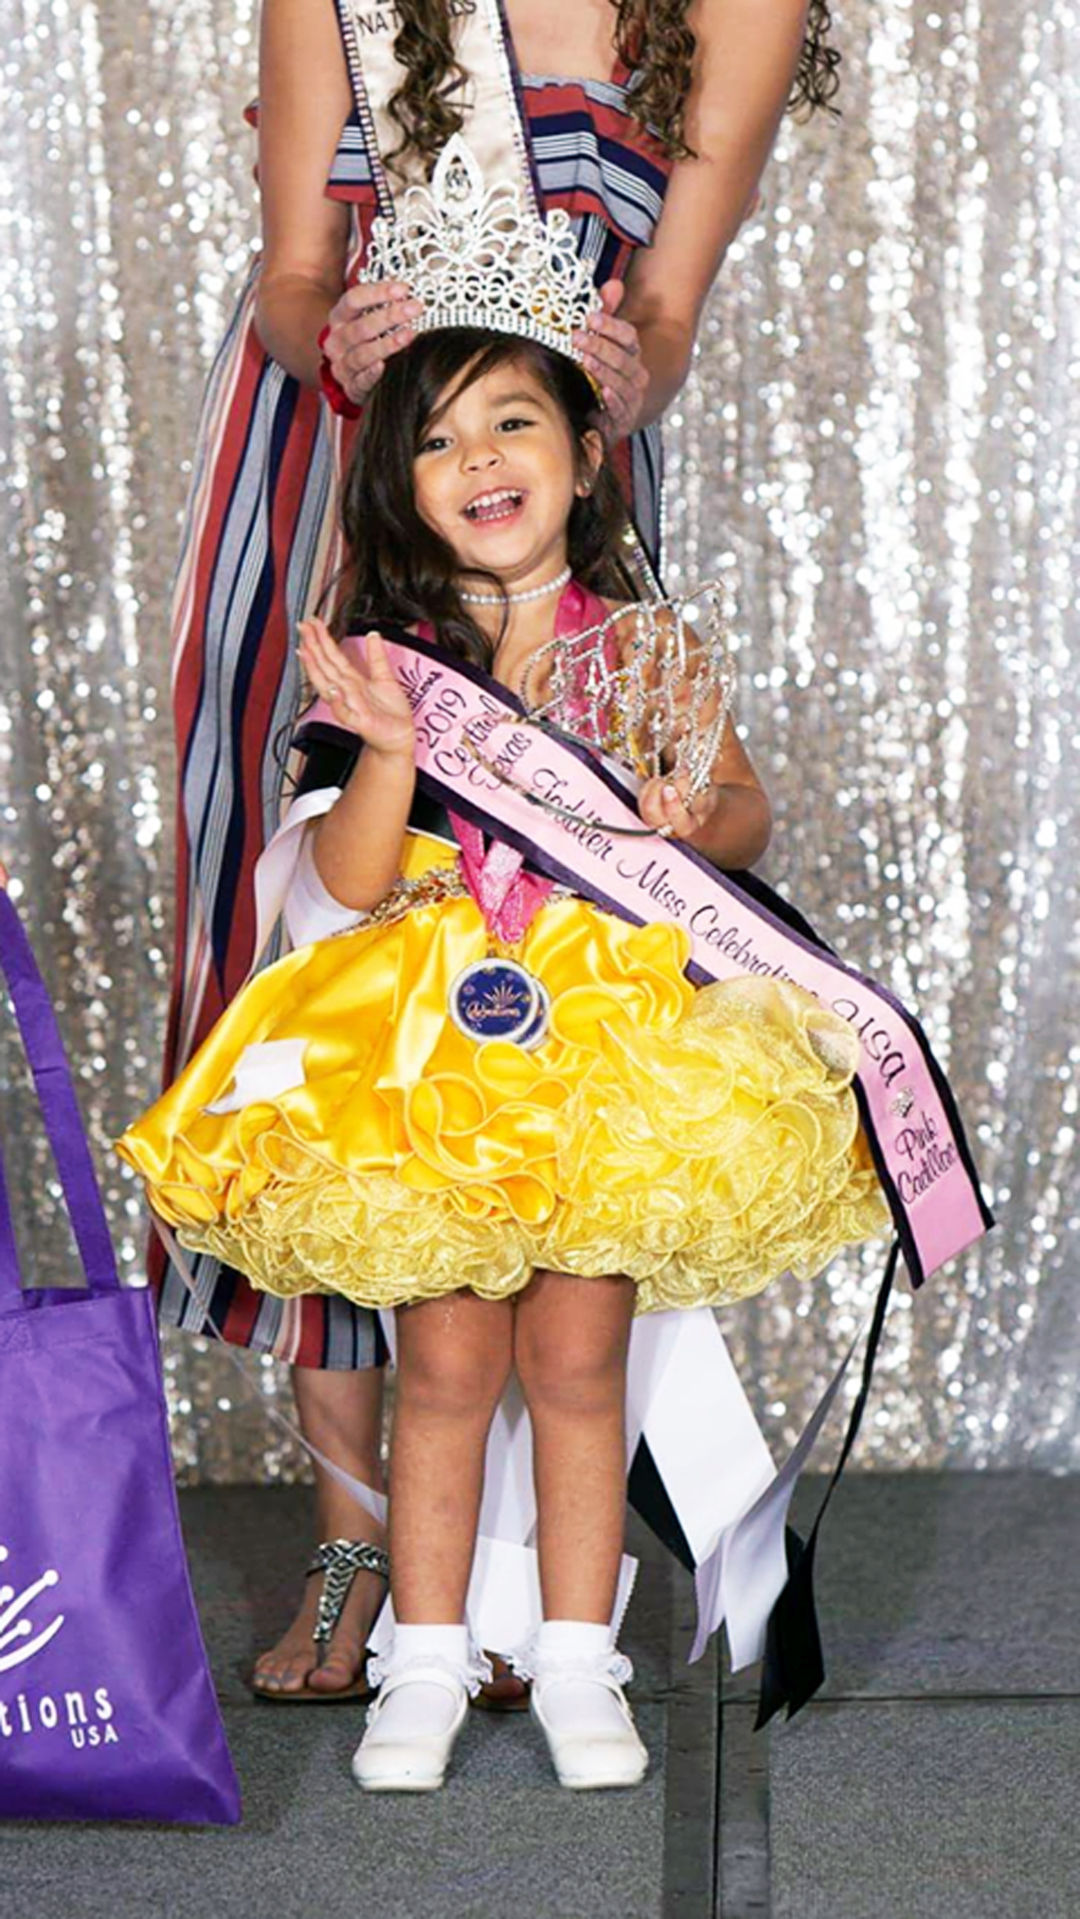 Local 3-year-old makes her way to 2020 Miss Celebrations USA Nationals